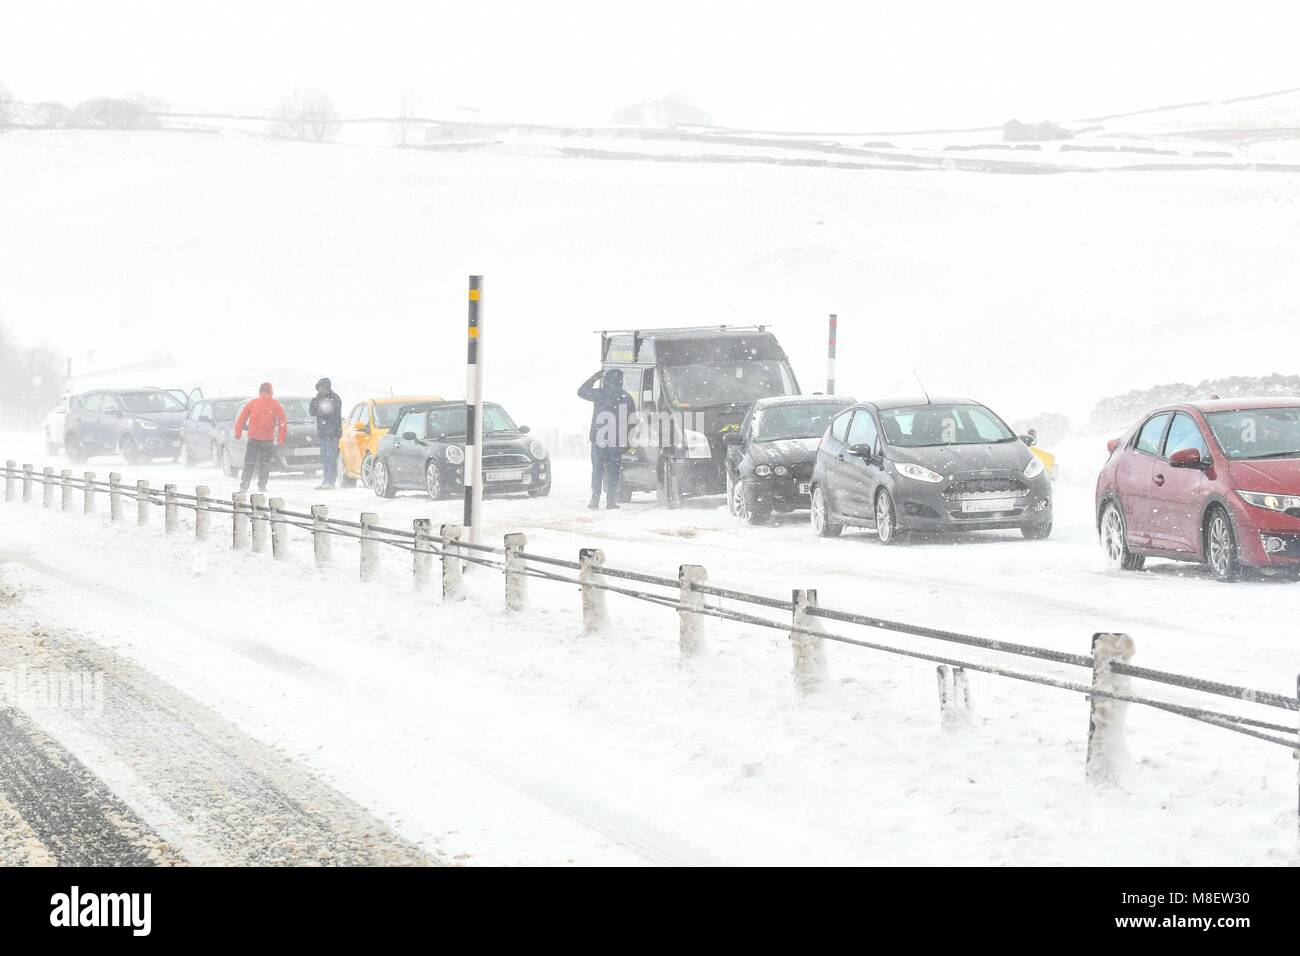 A66, UK, 17 Mar 2018. A66 eastbound - 17 March 2018: uk weather - motorists stranded on the A66 eastbound trunk - Stock Image